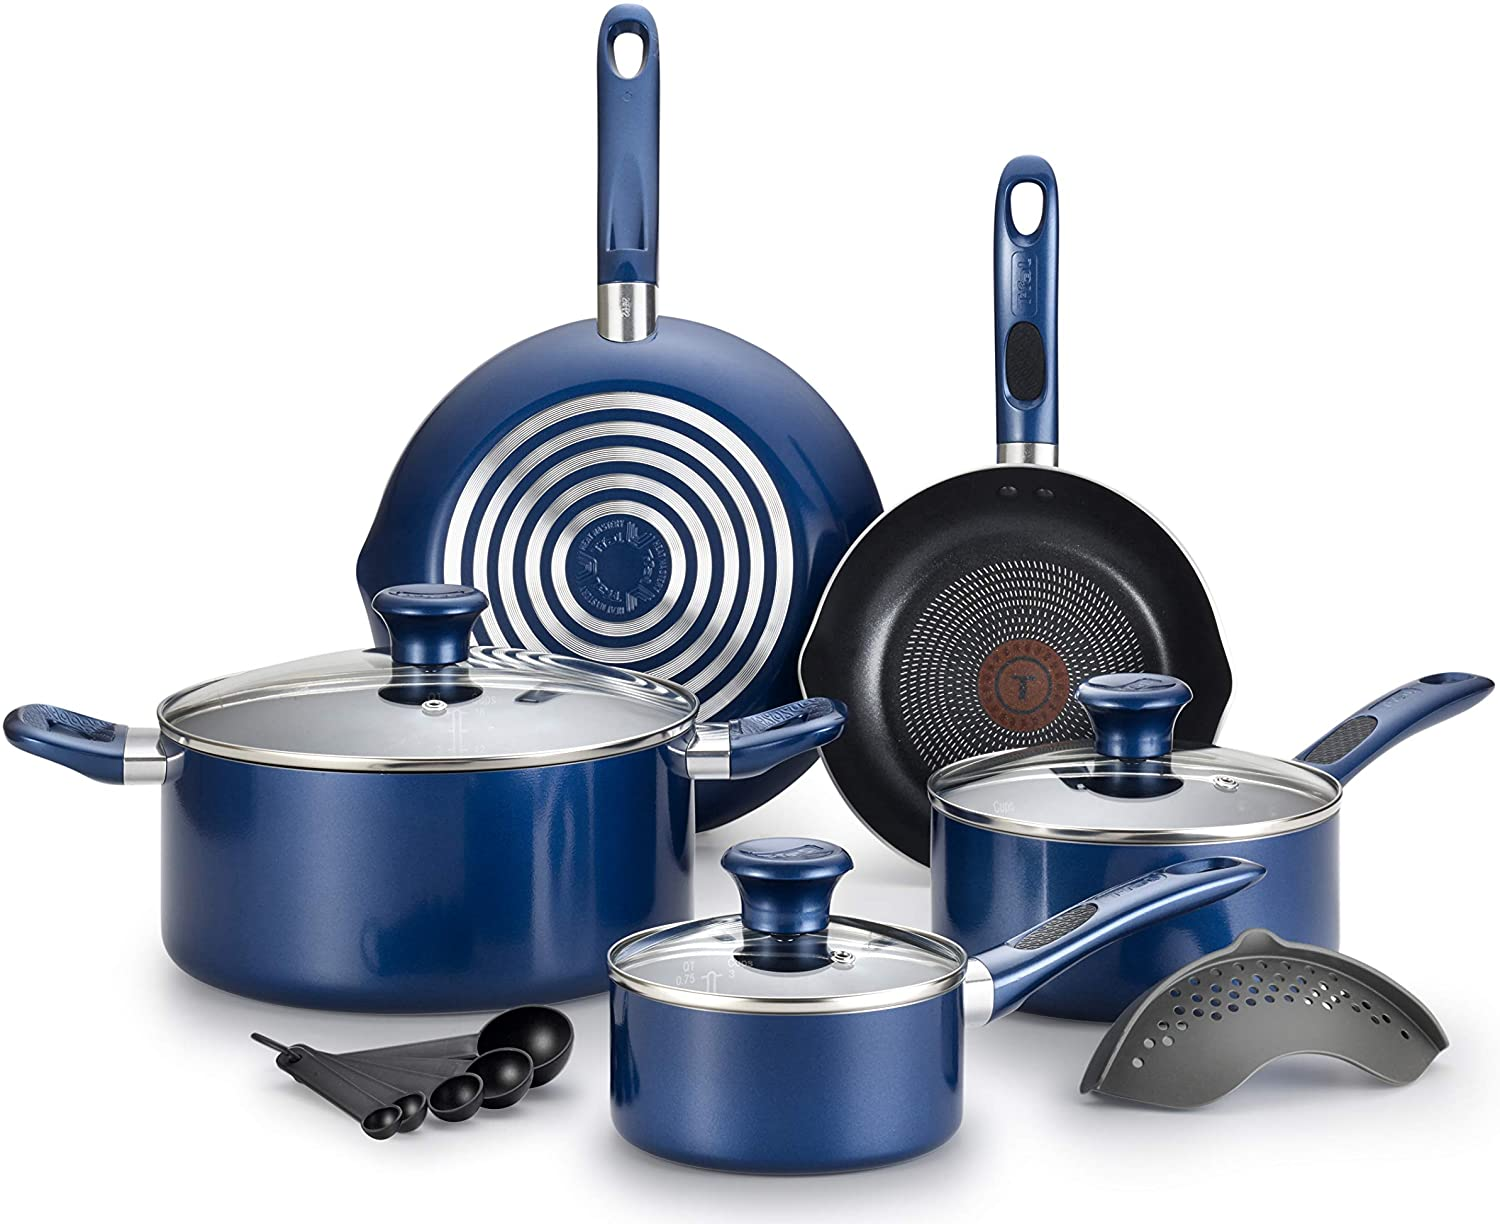 T-fal Excite ProGlide Nonstick Thermo-Spot Heat Indicator Dishwasher Oven Safe Cookware Set, 14-Piece, Blue